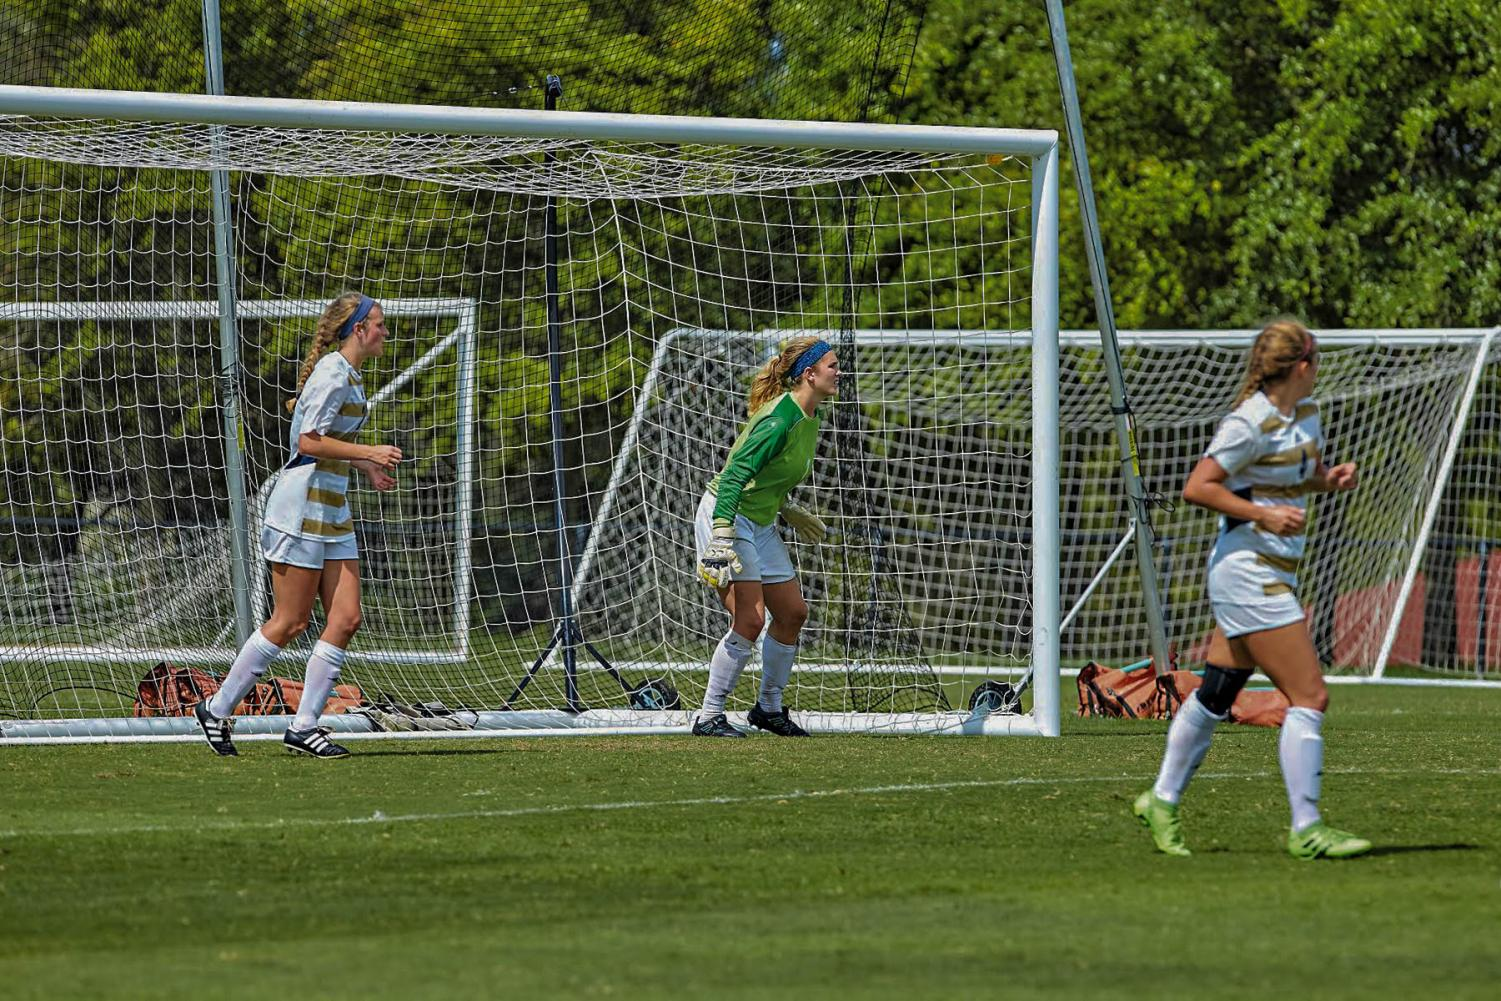 Goalkeeper Annabel Sweeney earns honorable recognitions in same week.